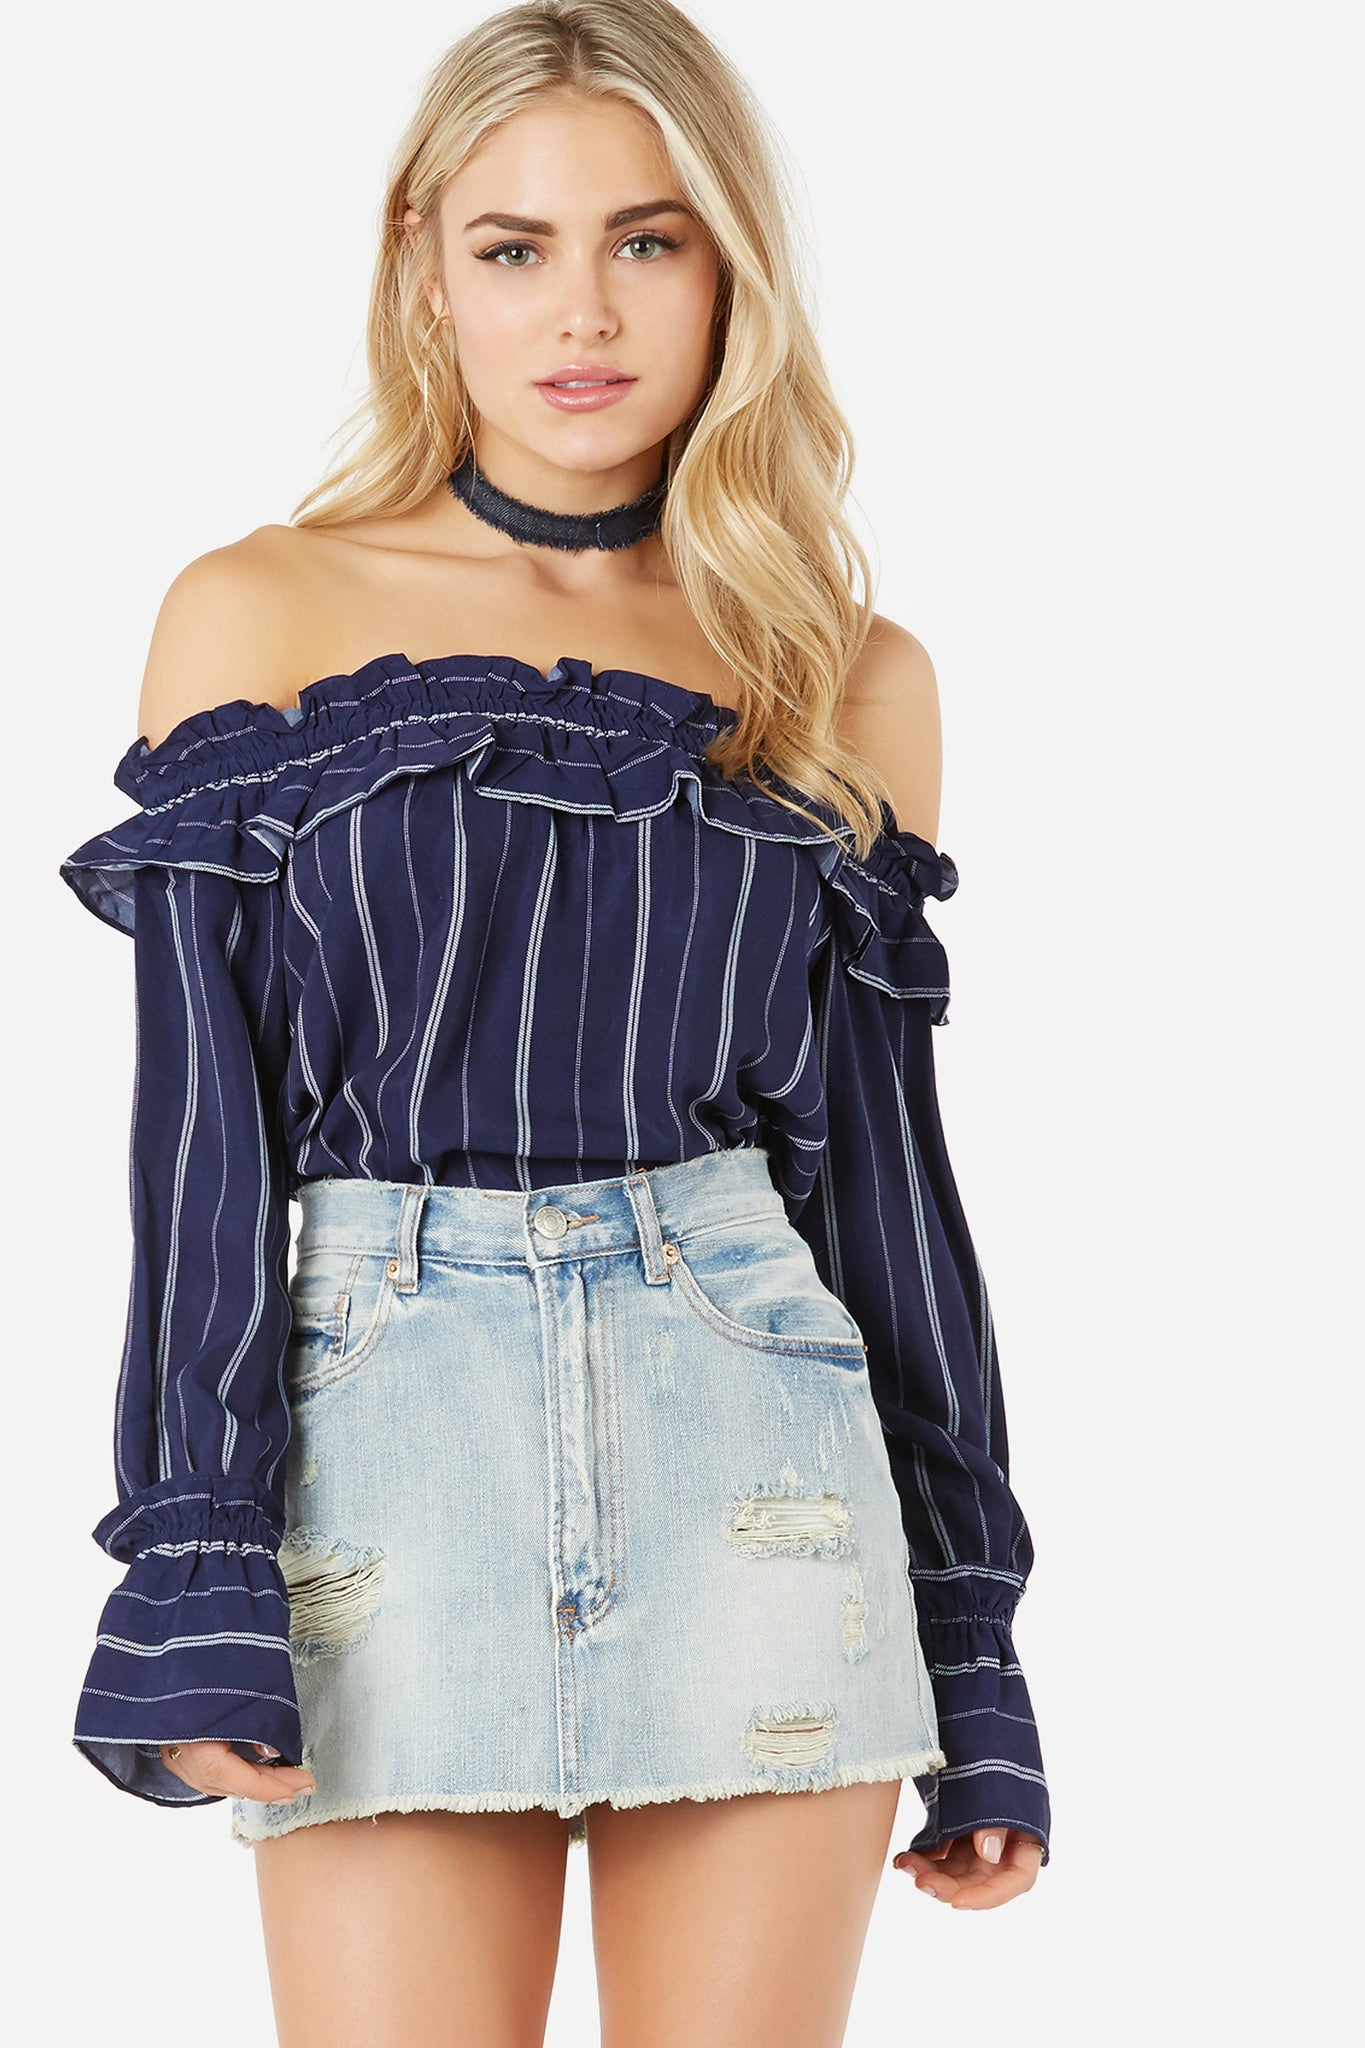 Flowy off shoulder top with stripe pattern throughout. Ruffle trim detailing with elasticized neckline.